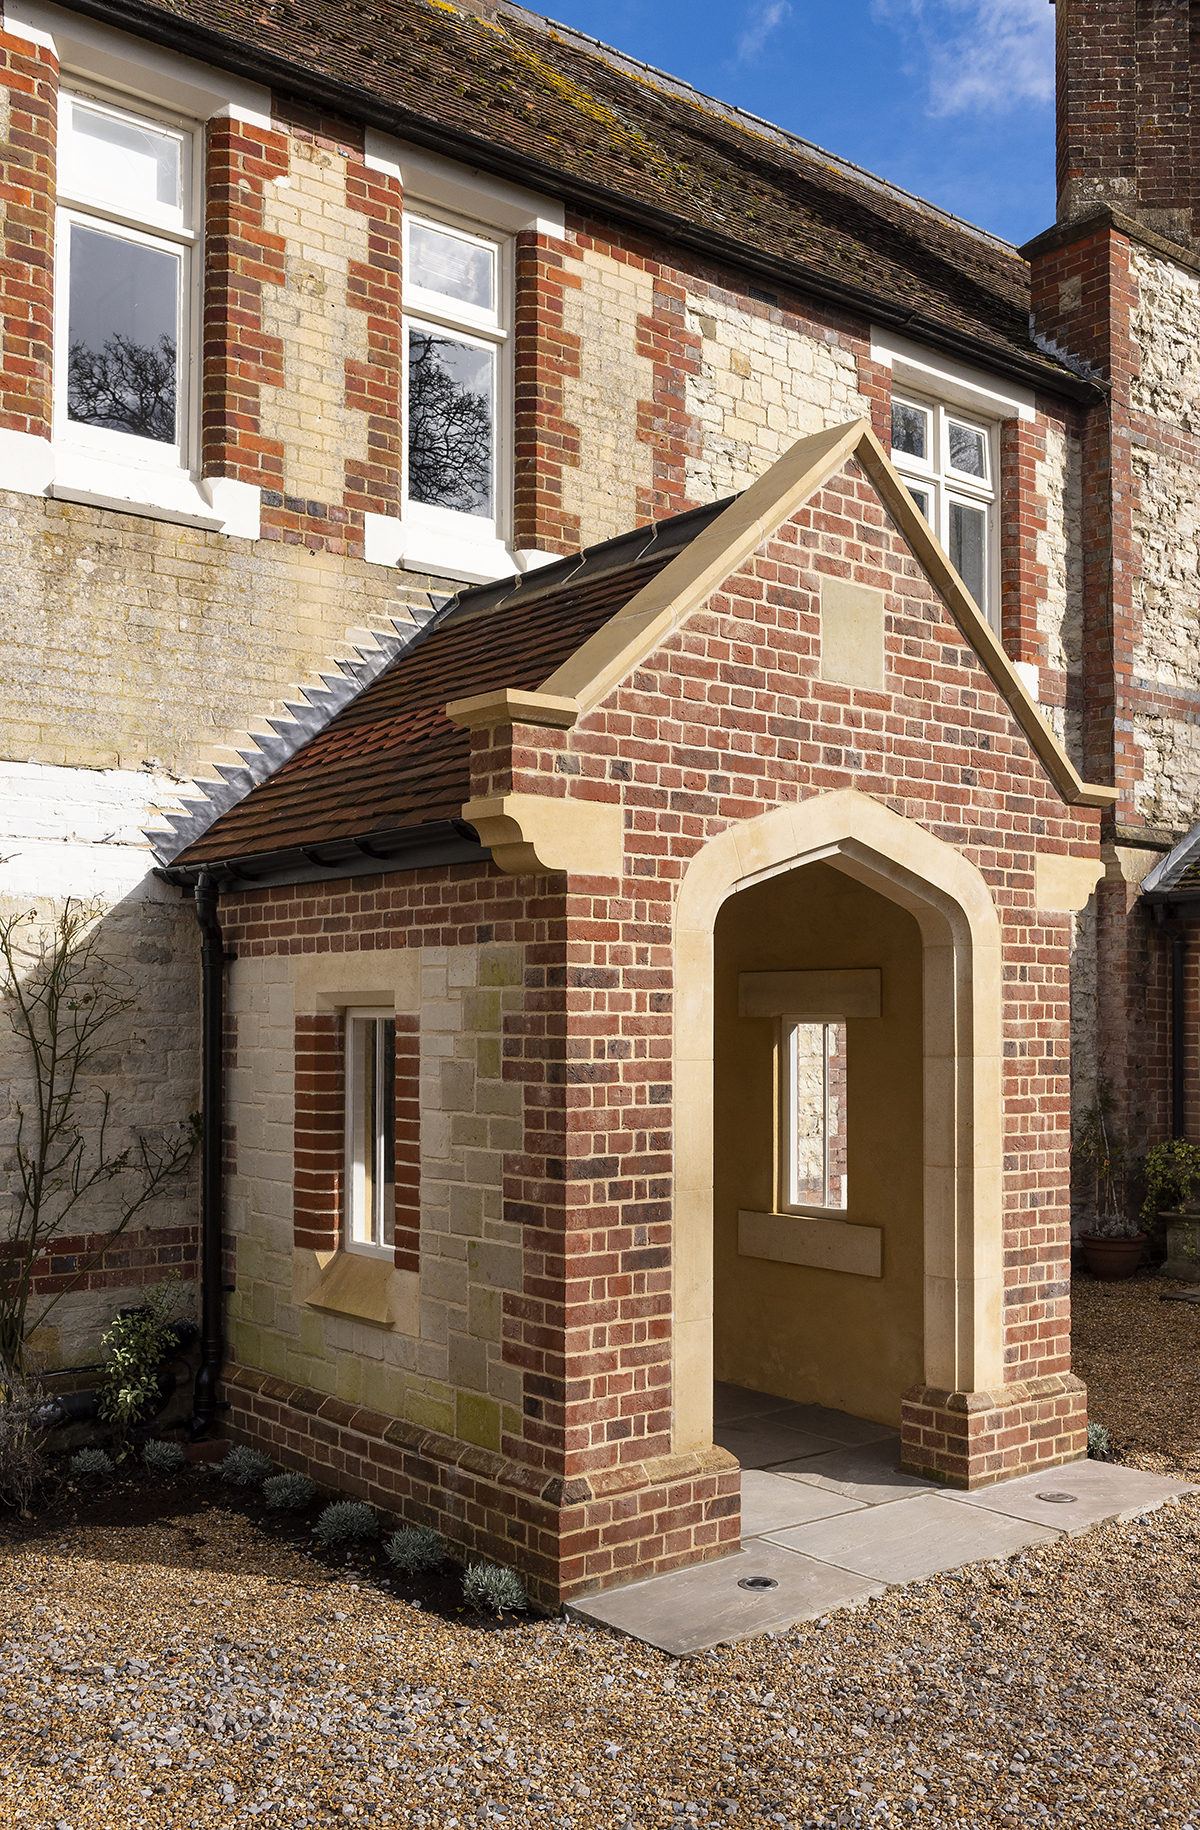 03-elsted-porch-rectory-house-extension-handmade-bricks-bath-stone-arch-stonemasonry-architecture-chichester-west-sussex-south-downs-national-park-uk-rider-stirland-architects.jpg.jpg